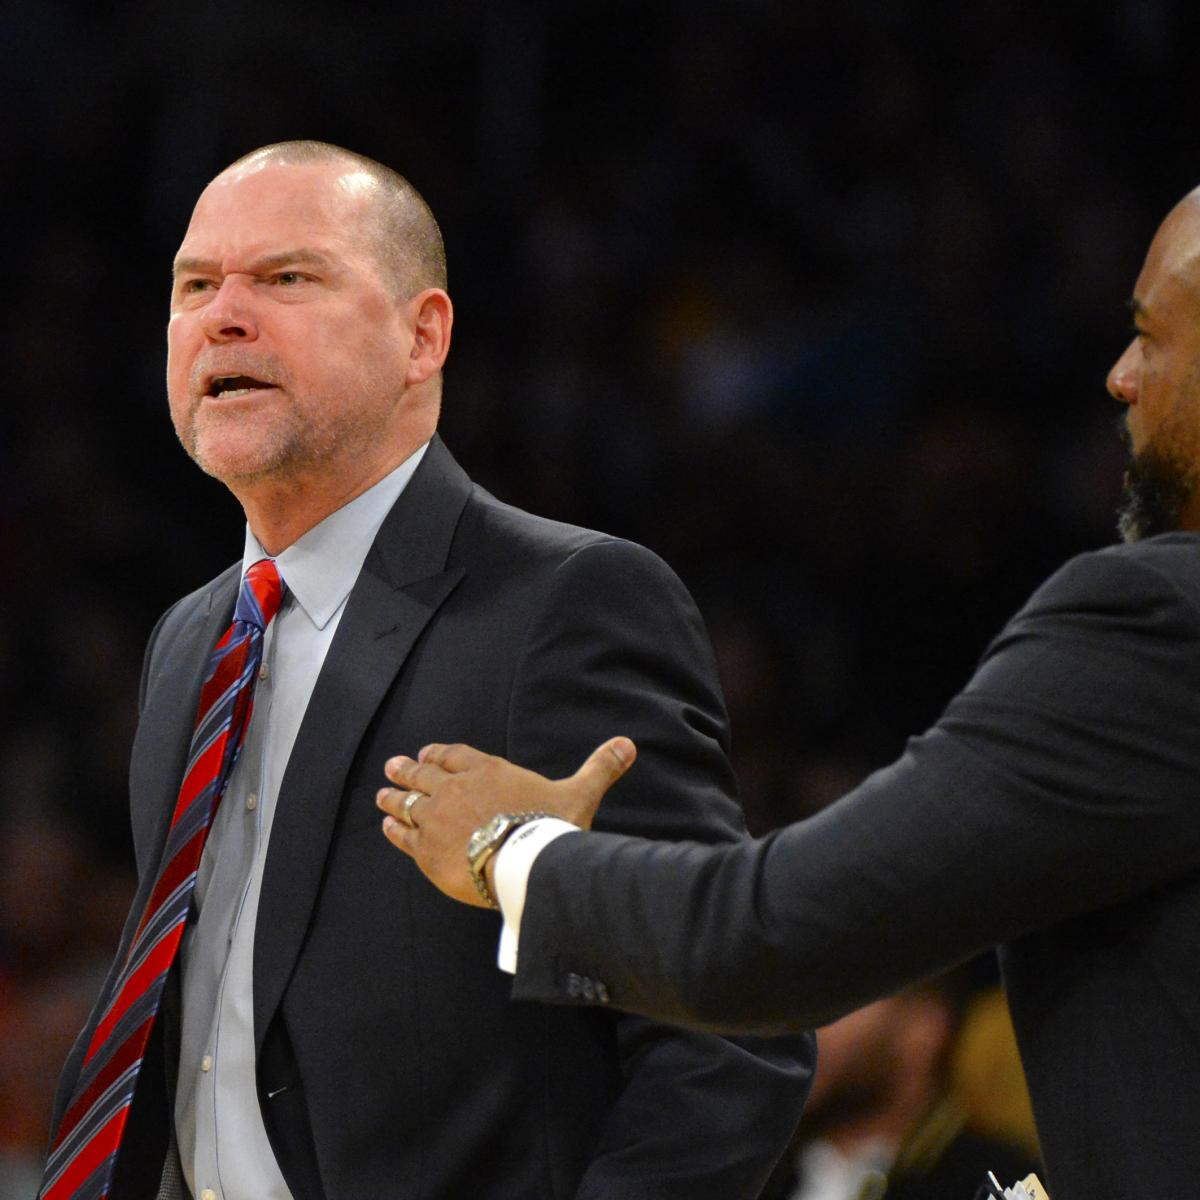 Nuggets Quarter Season Tickets: Nuggets' Mike Malone Suspended 1 Game For Making Contact